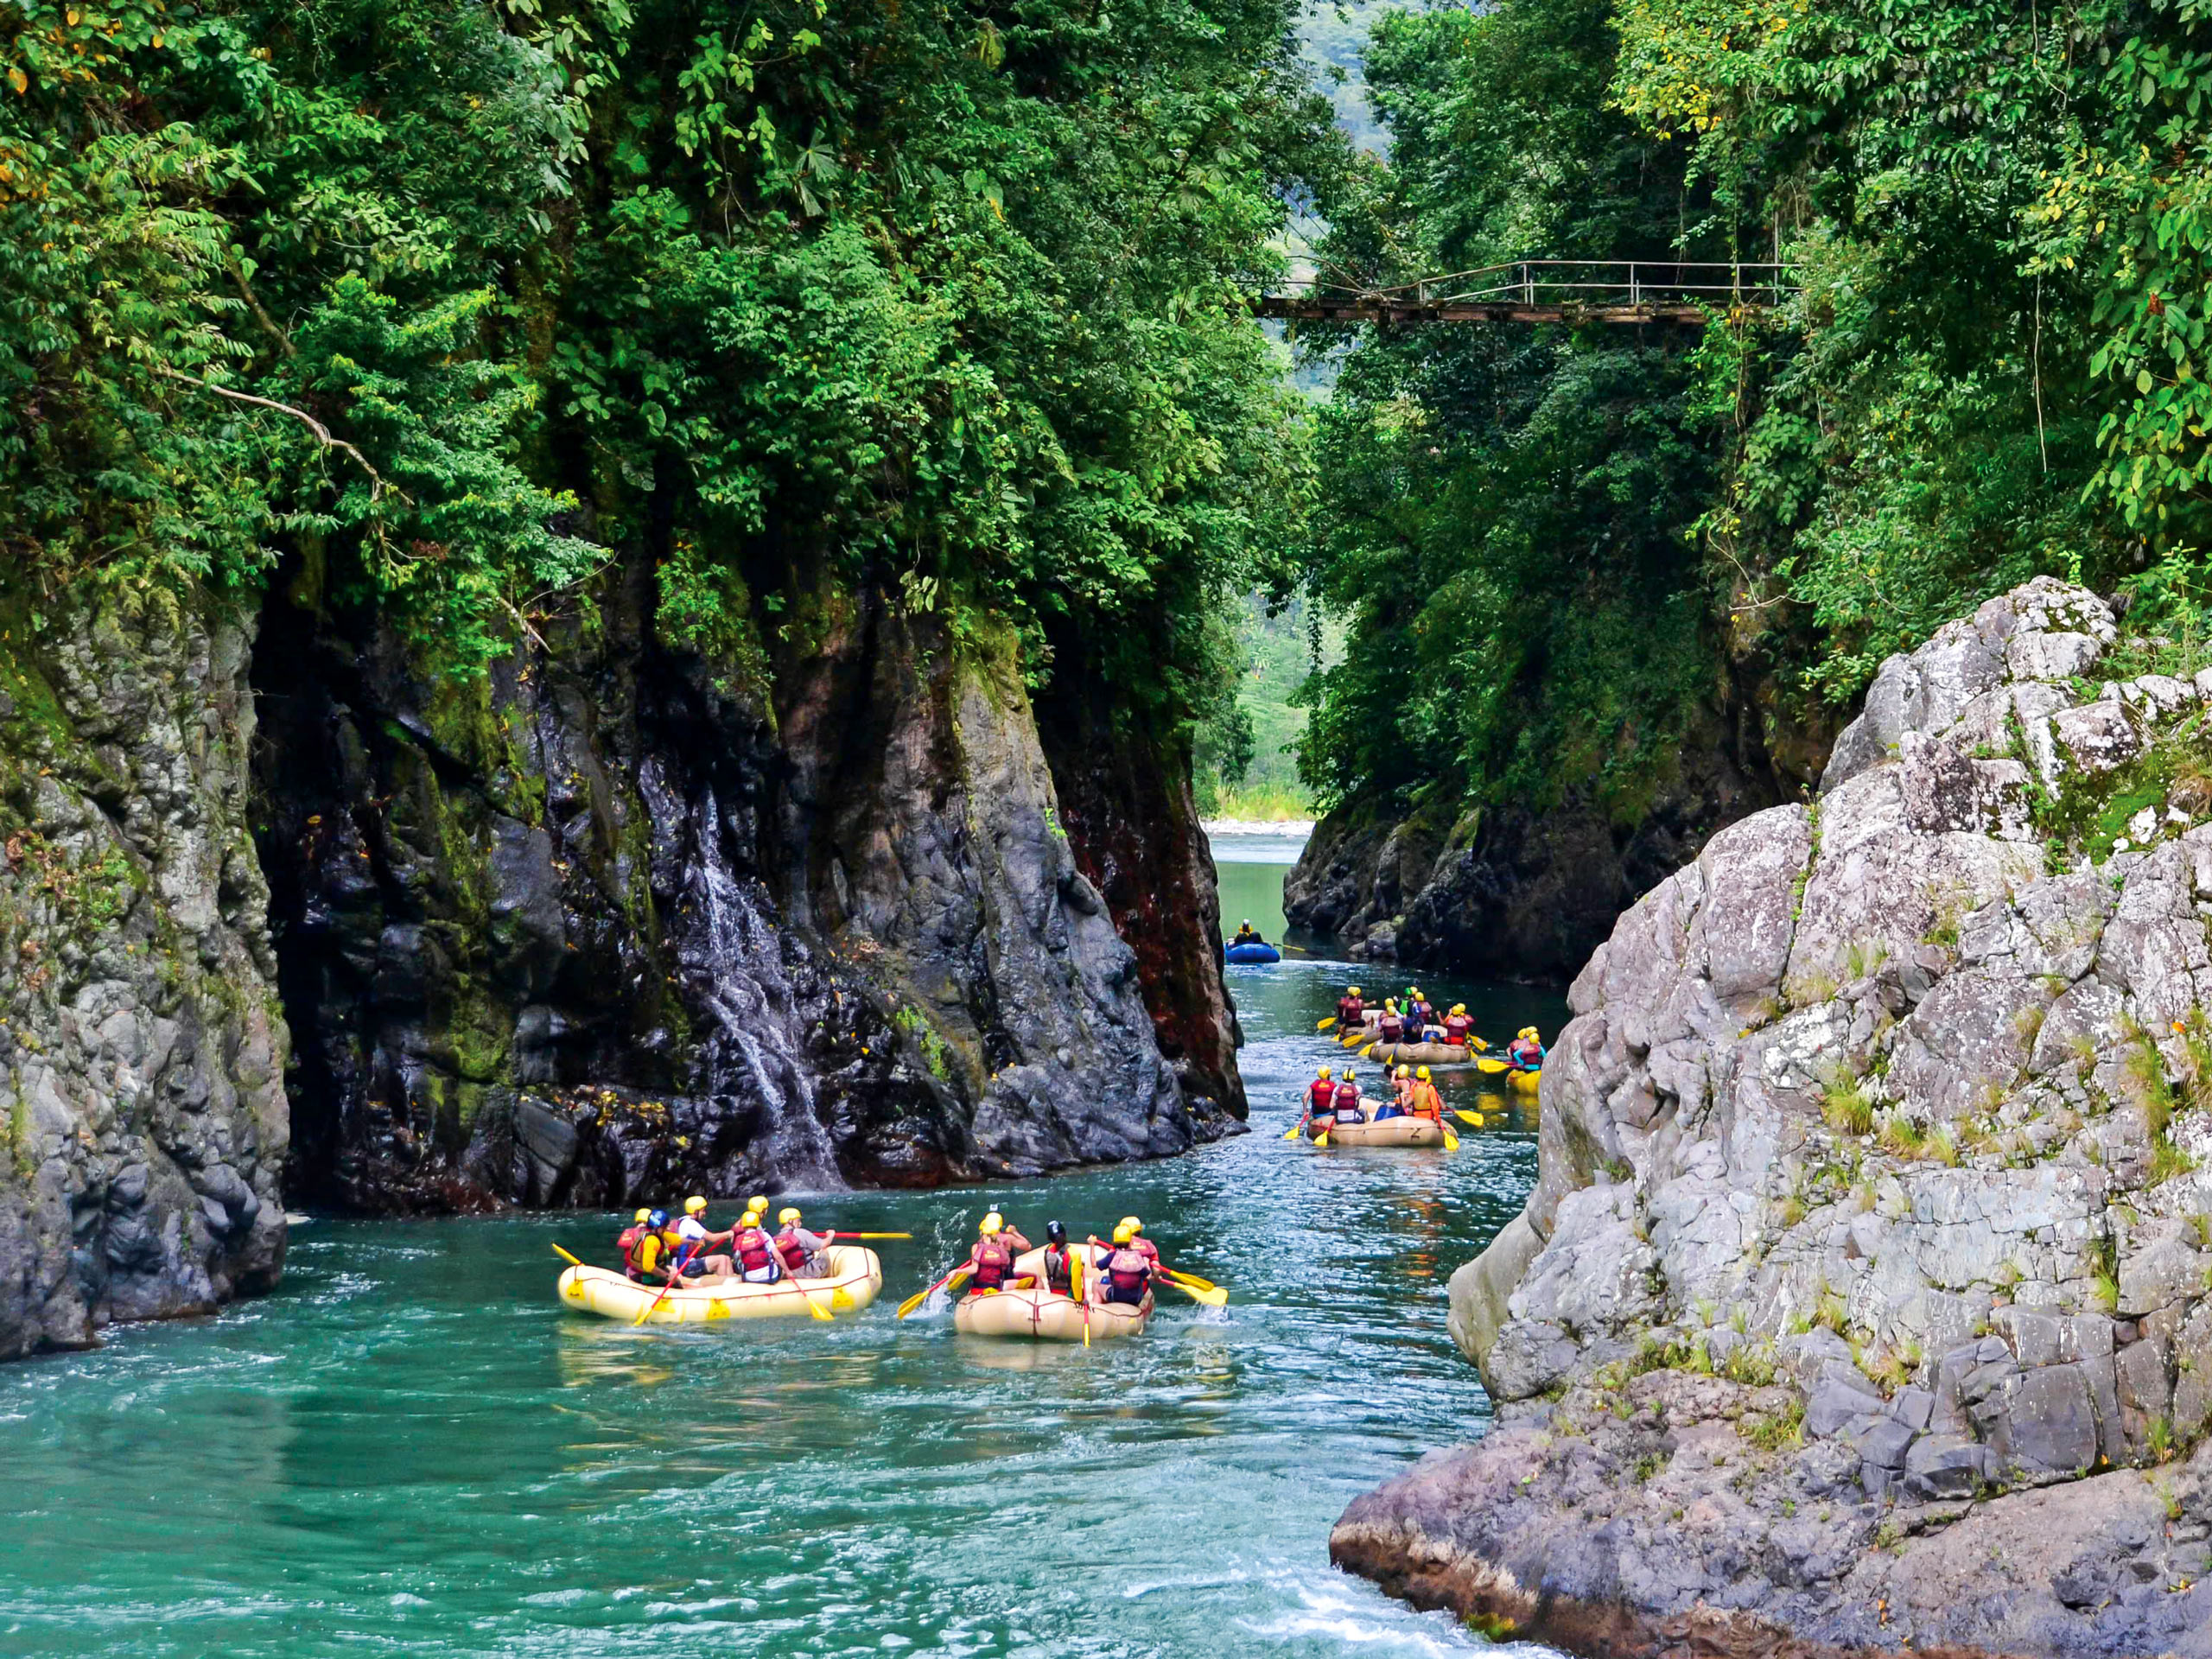 Rafting on the canal in the rainforest